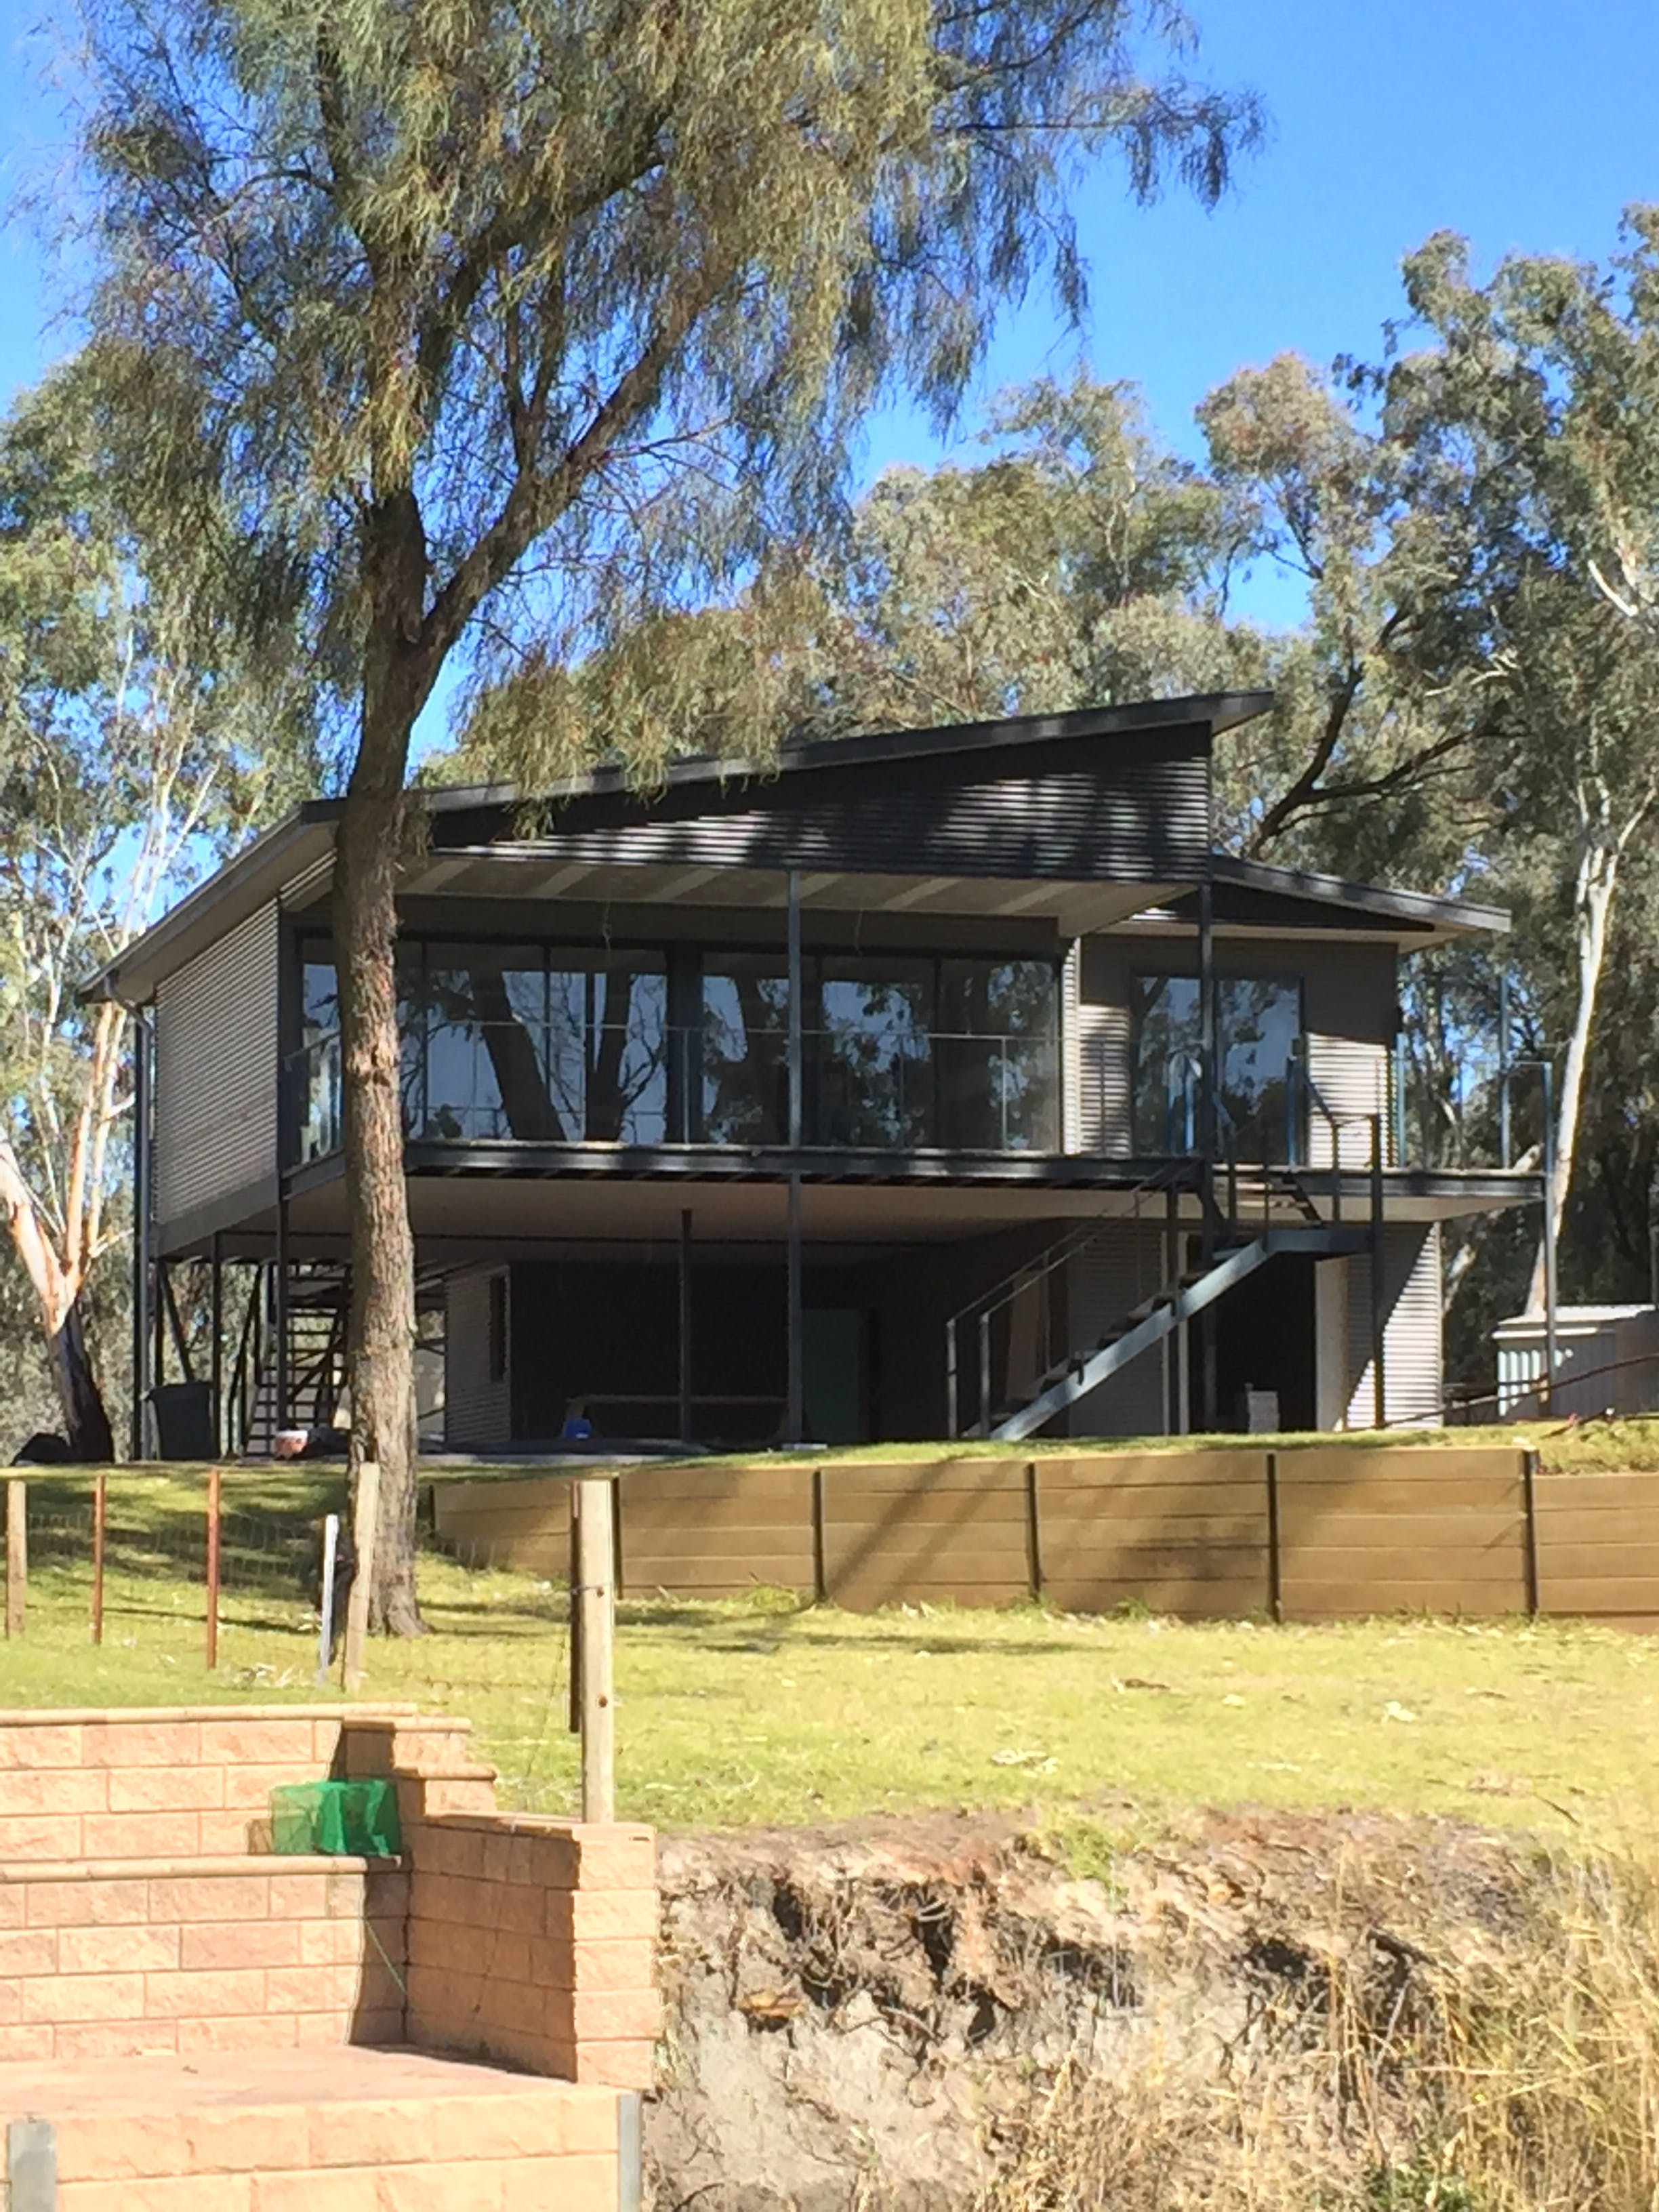 36 Brenda Park Via Morgan -River Shack Rentals - Accommodation Melbourne